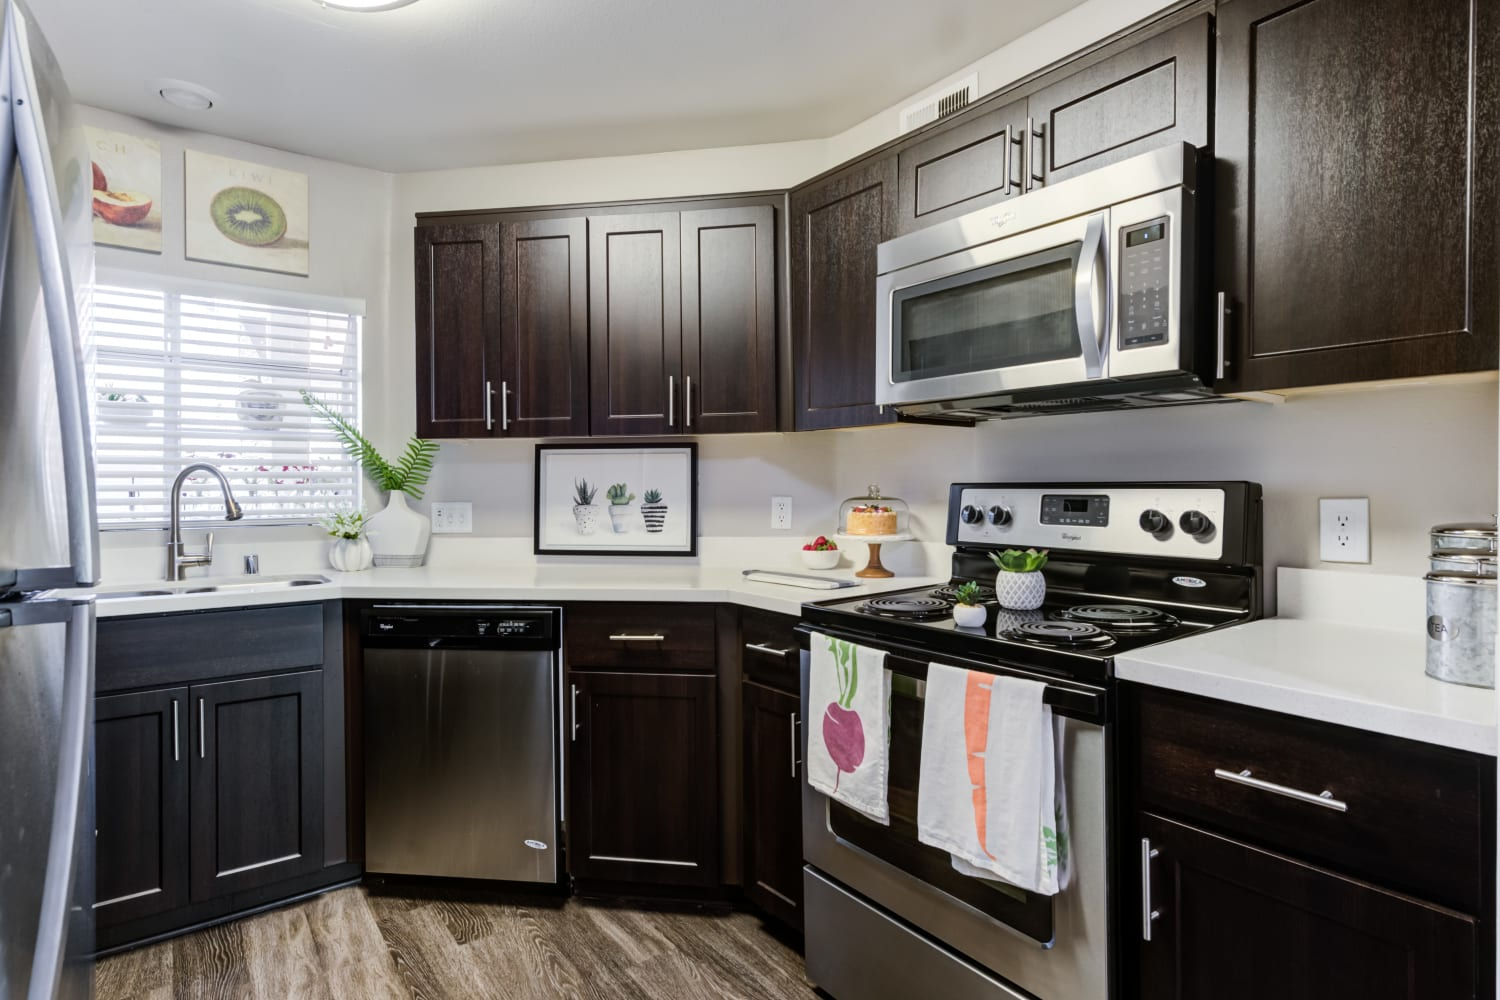 Private Kitchen at Sierra Heights Apartments in Rancho Cucamonga, California